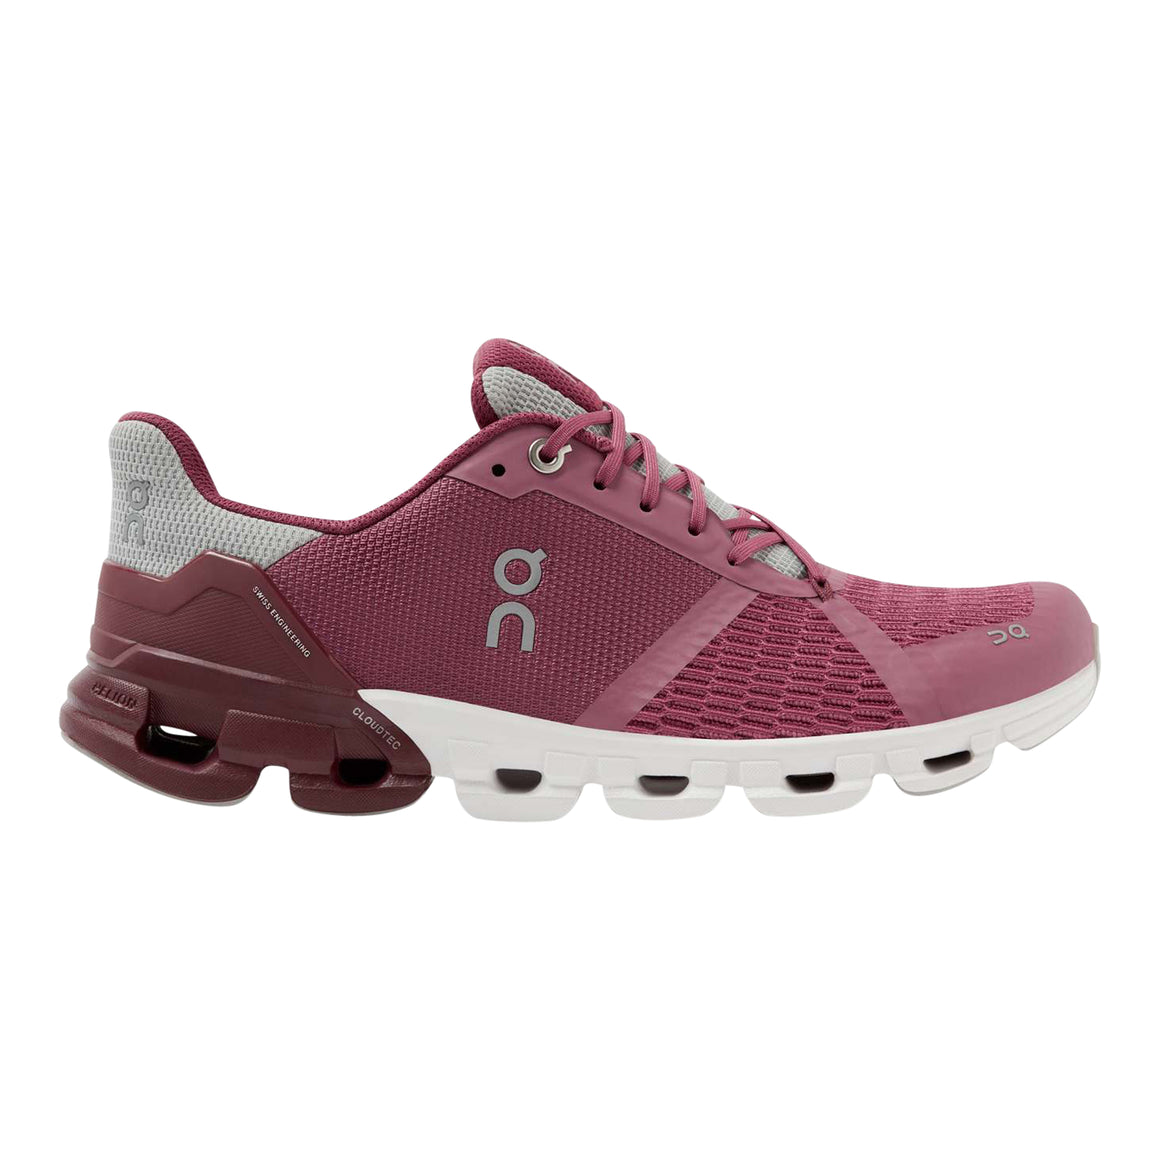 Cloudflyer Running Shoes for Women in Mulberry